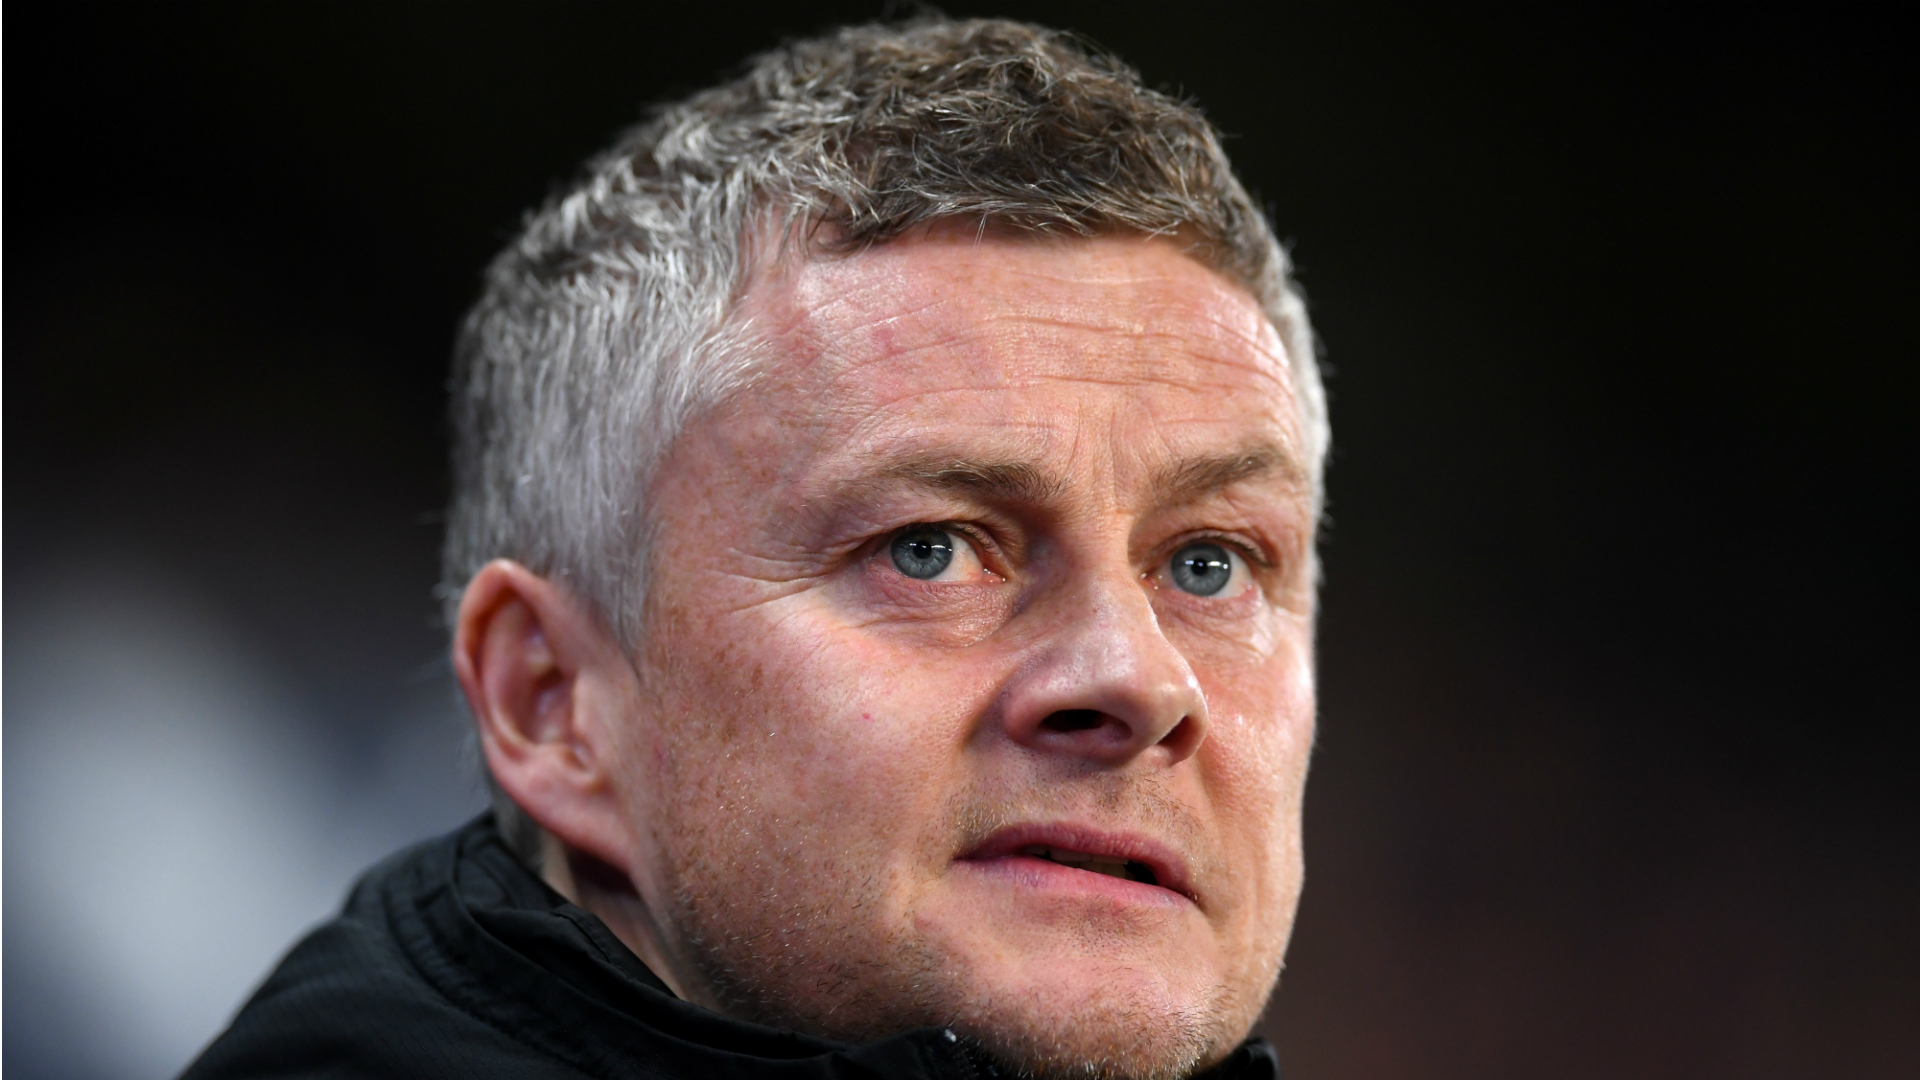 We want rivalry, but let's keep it at a sane level - Solskjaer condemns derby misbehaviour